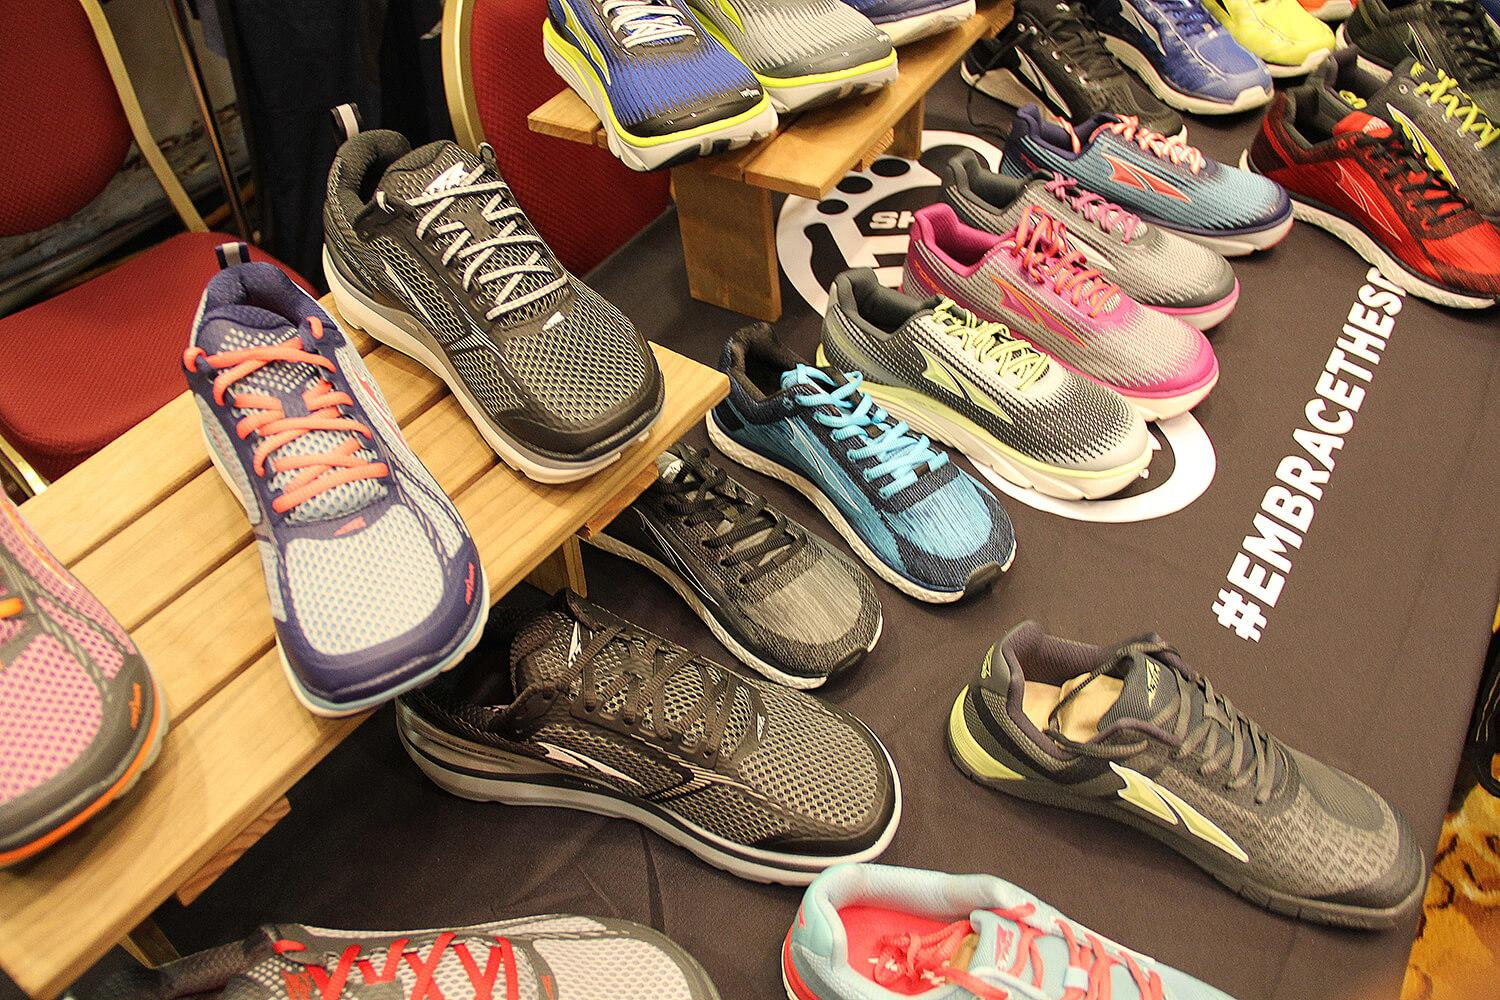 altra-shoe-display-featured